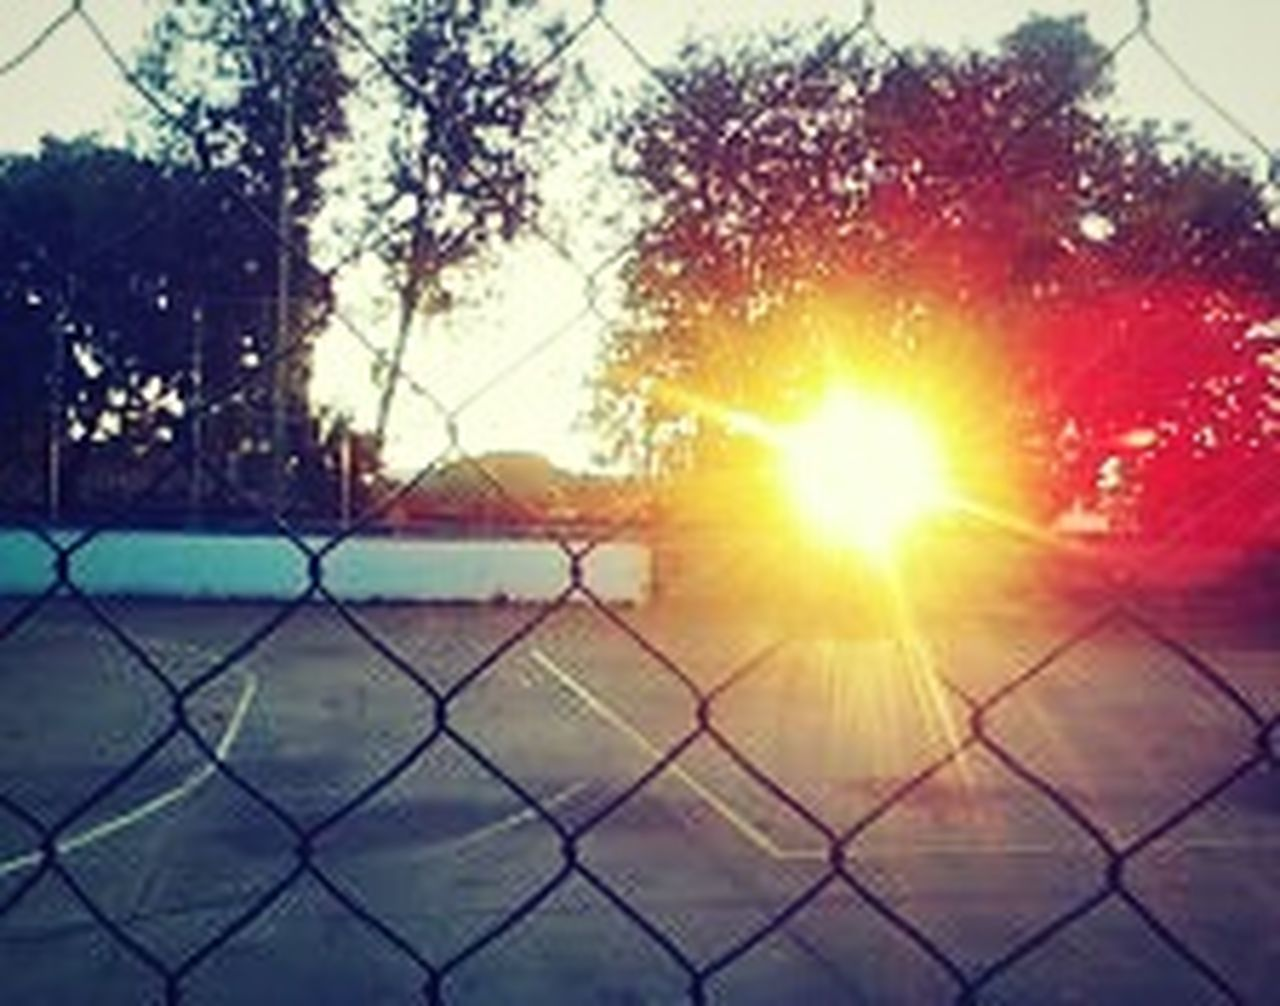 chainlink fence, sunset, sun, sunlight, sunbeam, no people, sky, outdoors, day, nature, tree, city, close-up